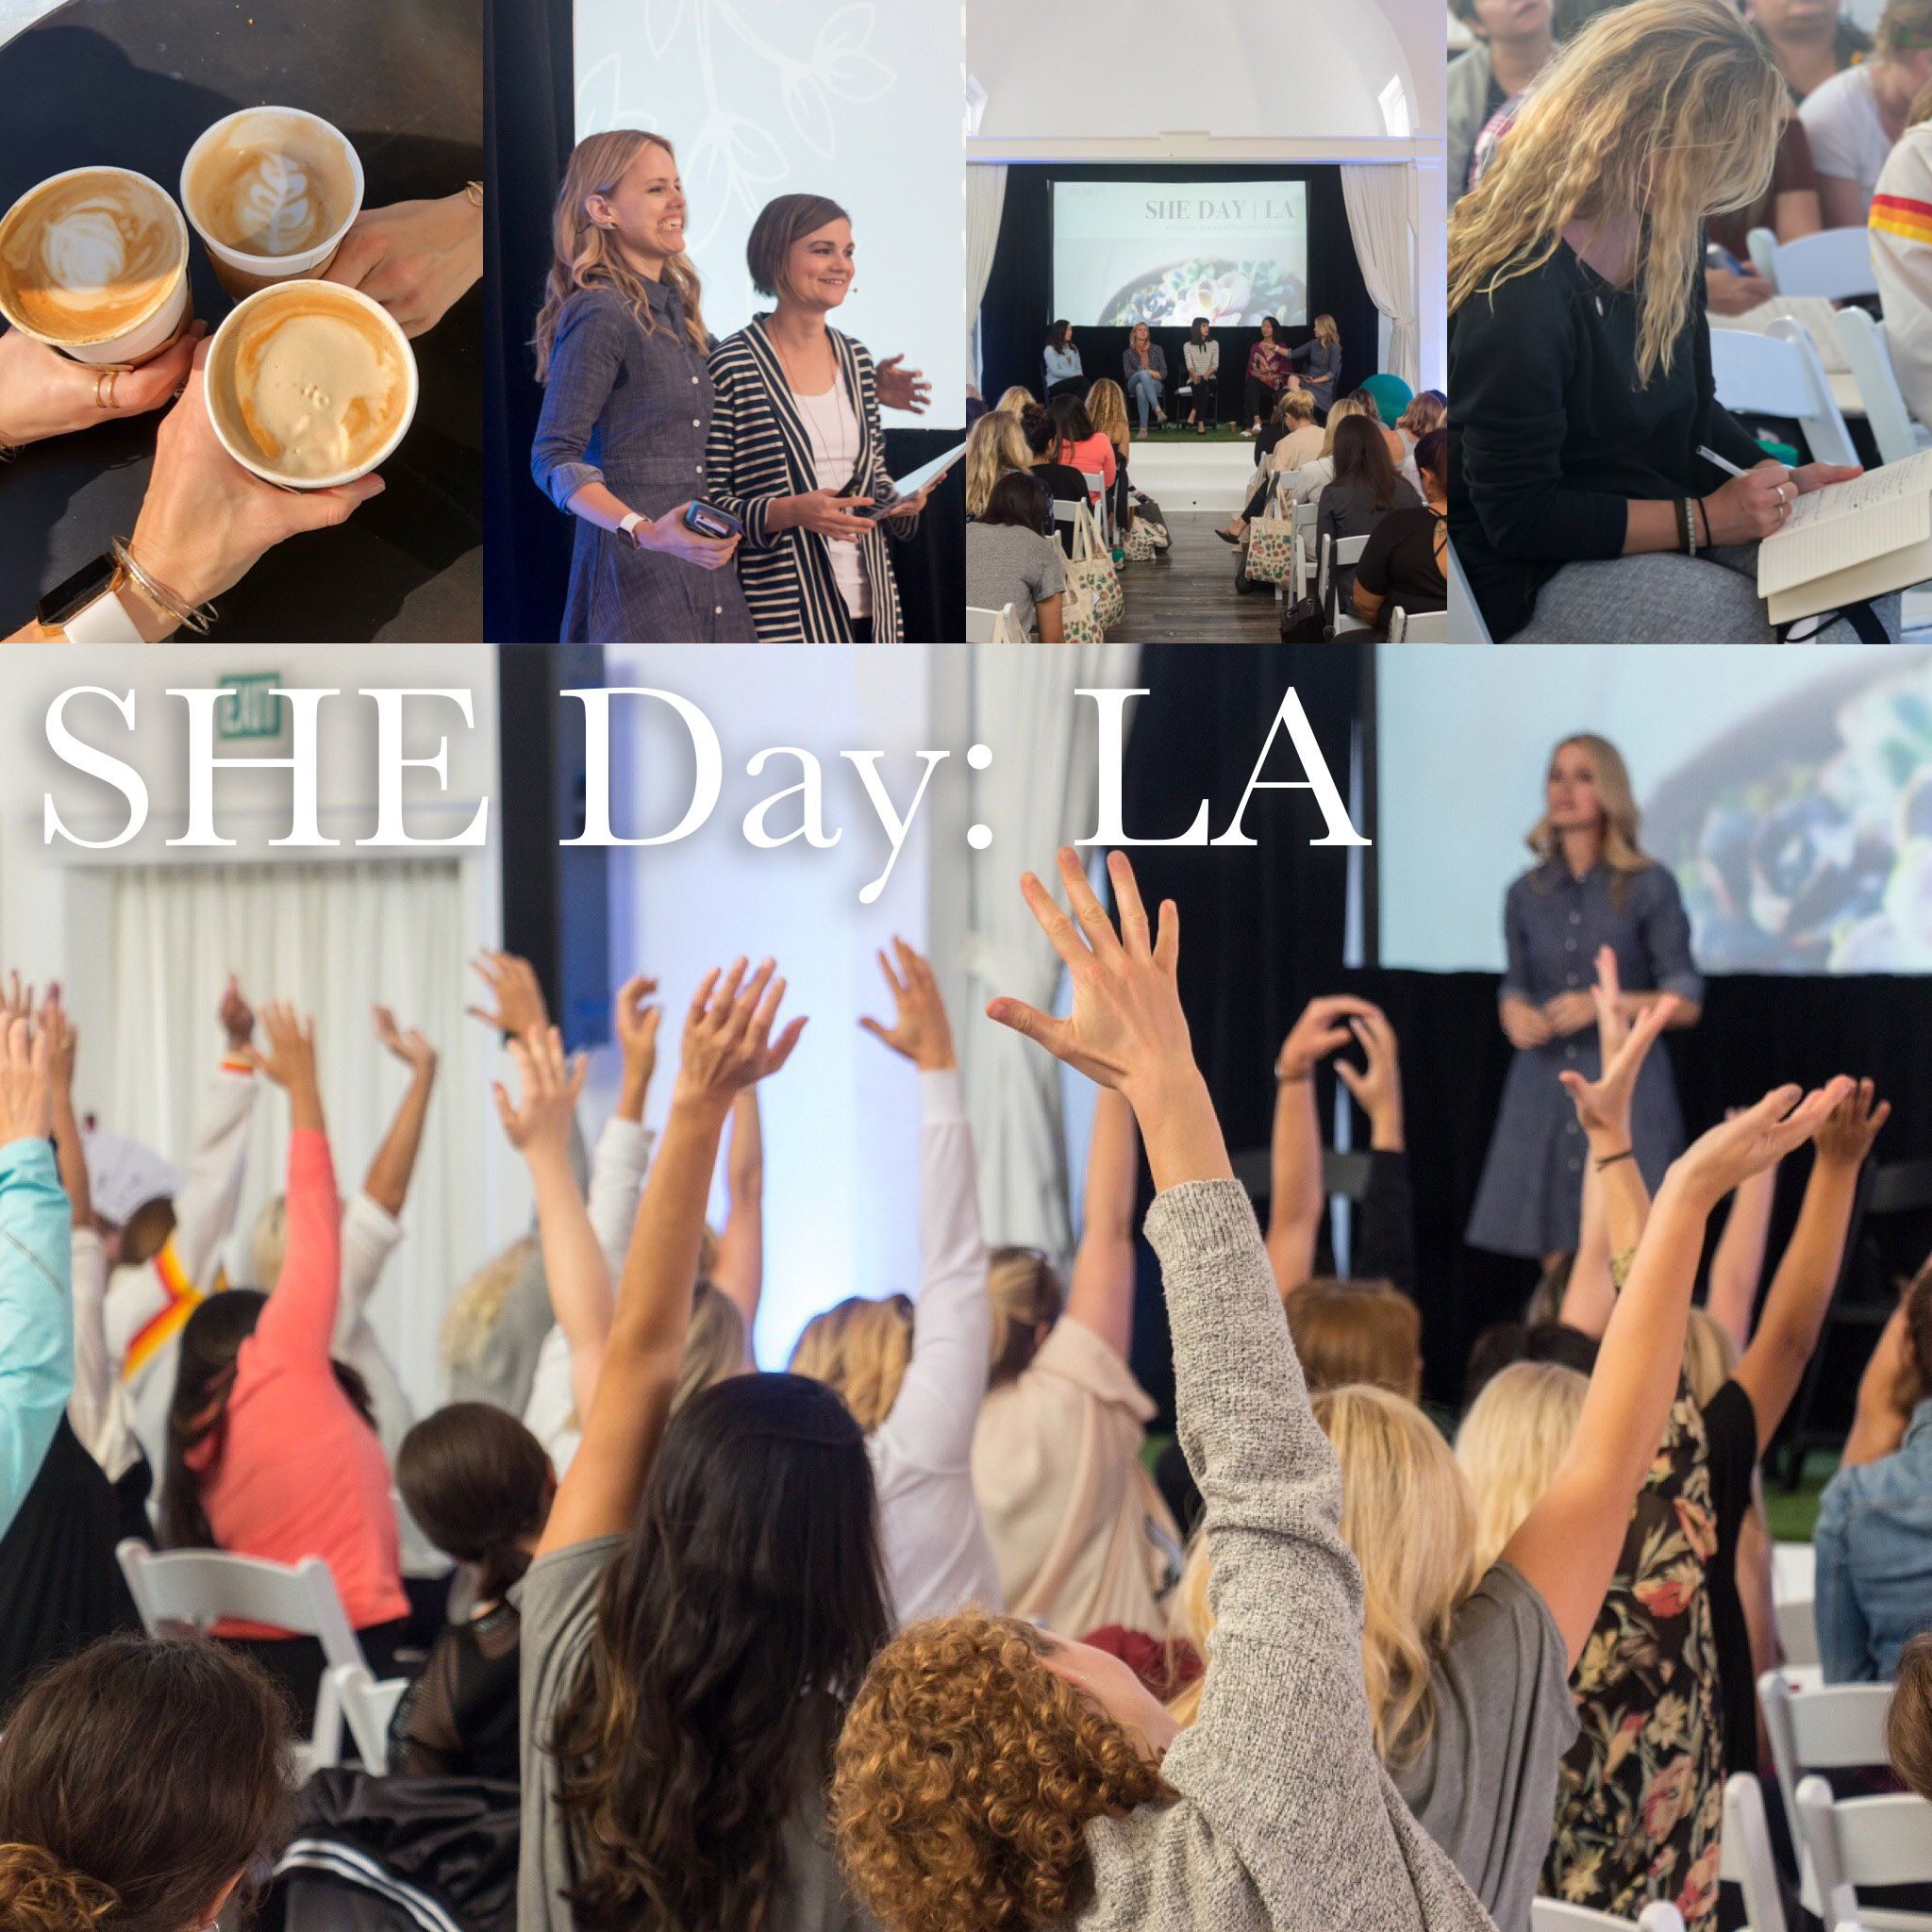 Highlights from SHE Day: LA - a sustainable, healthy, ethical women's event!